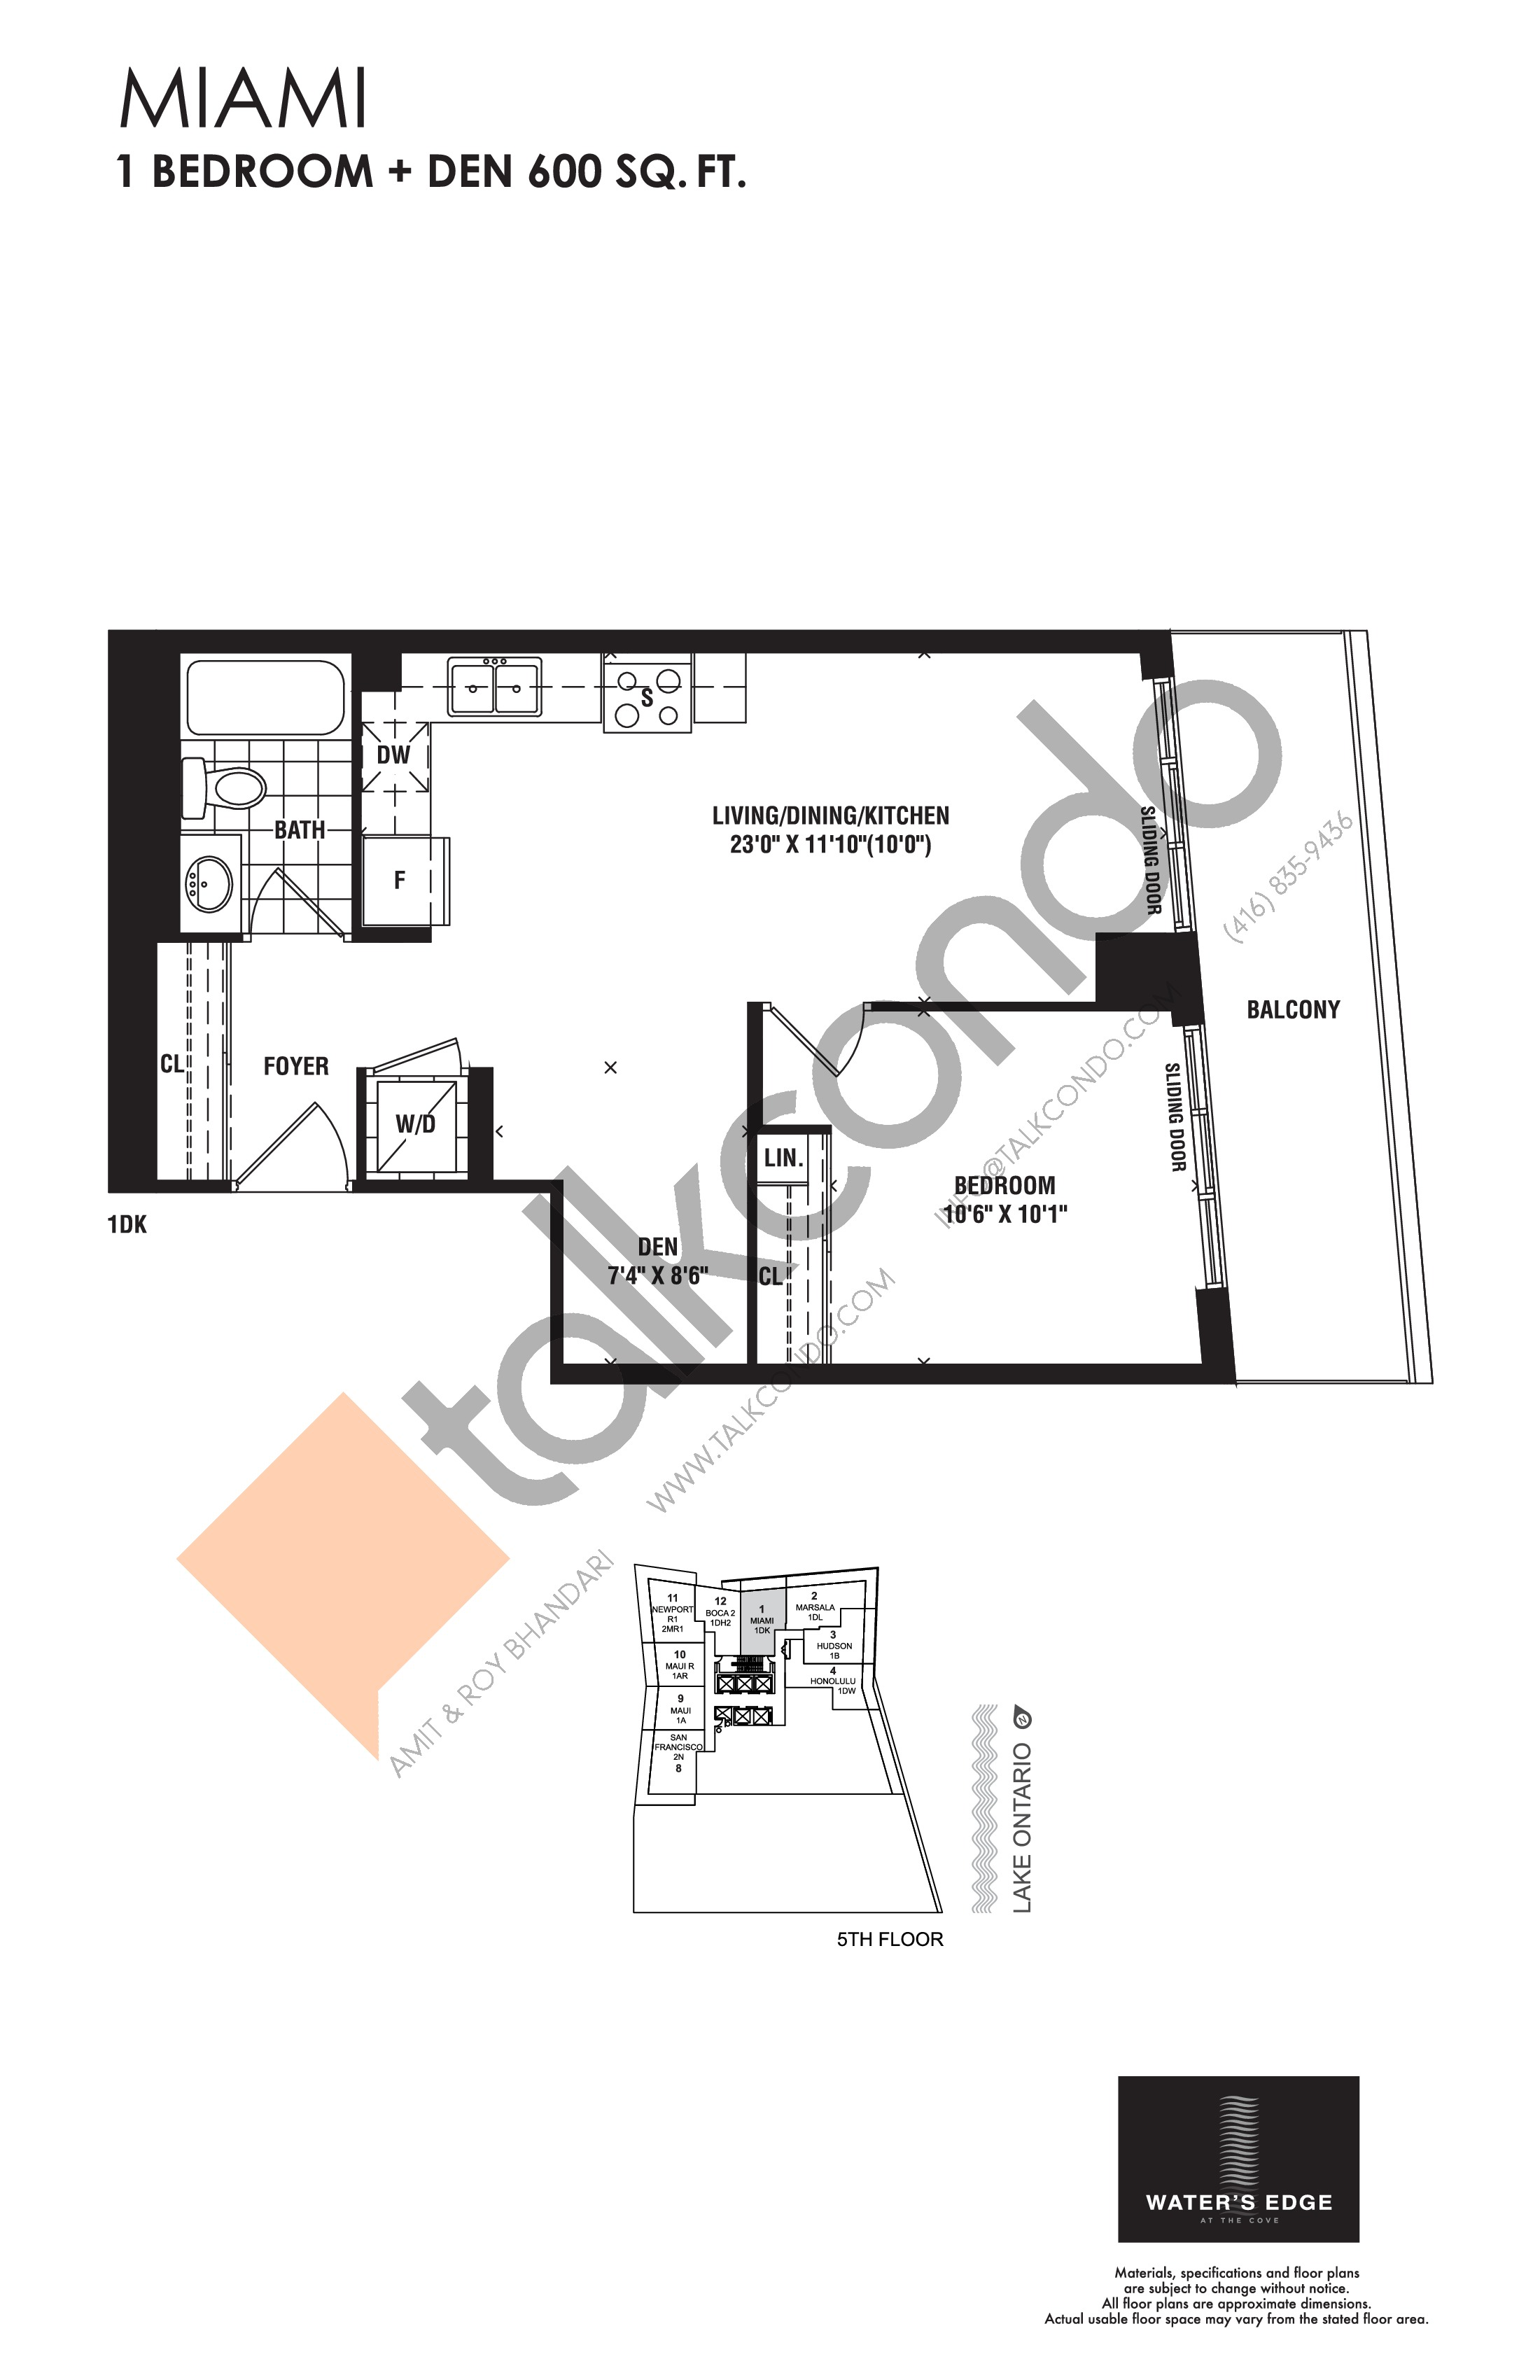 Miami Floor Plan at Water's Edge at the Cove Condos - 600 sq.ft